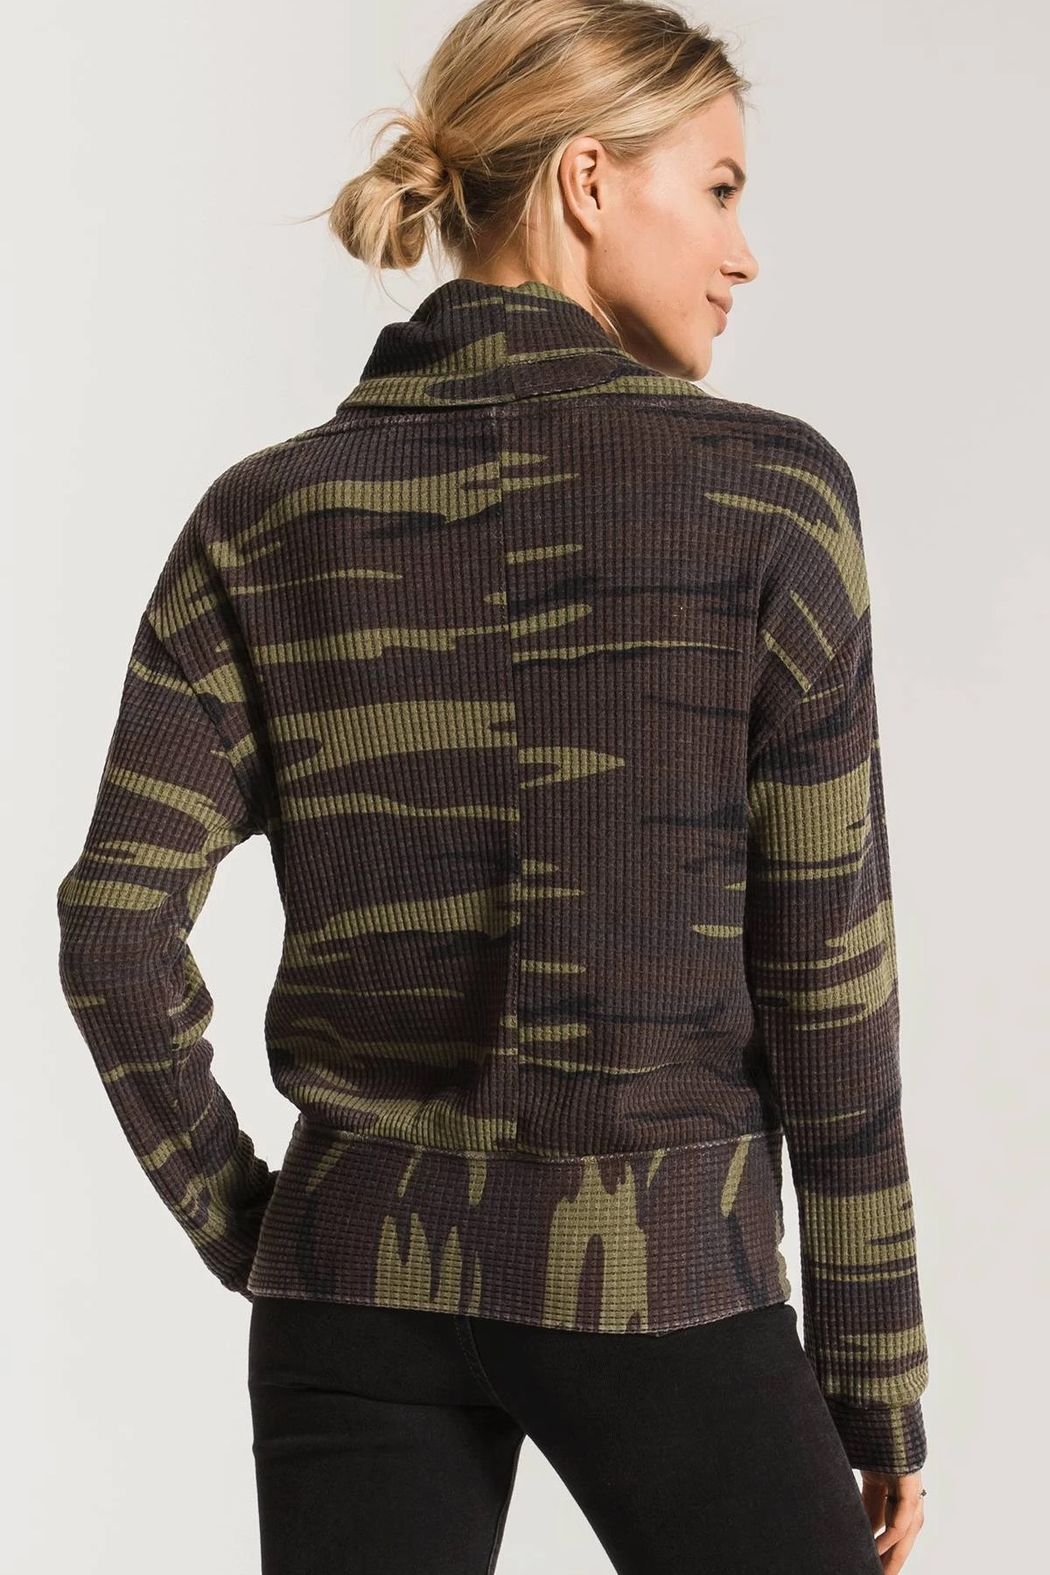 z supply Camo Cowl Neck Waffle Thermal - Side Cropped Image